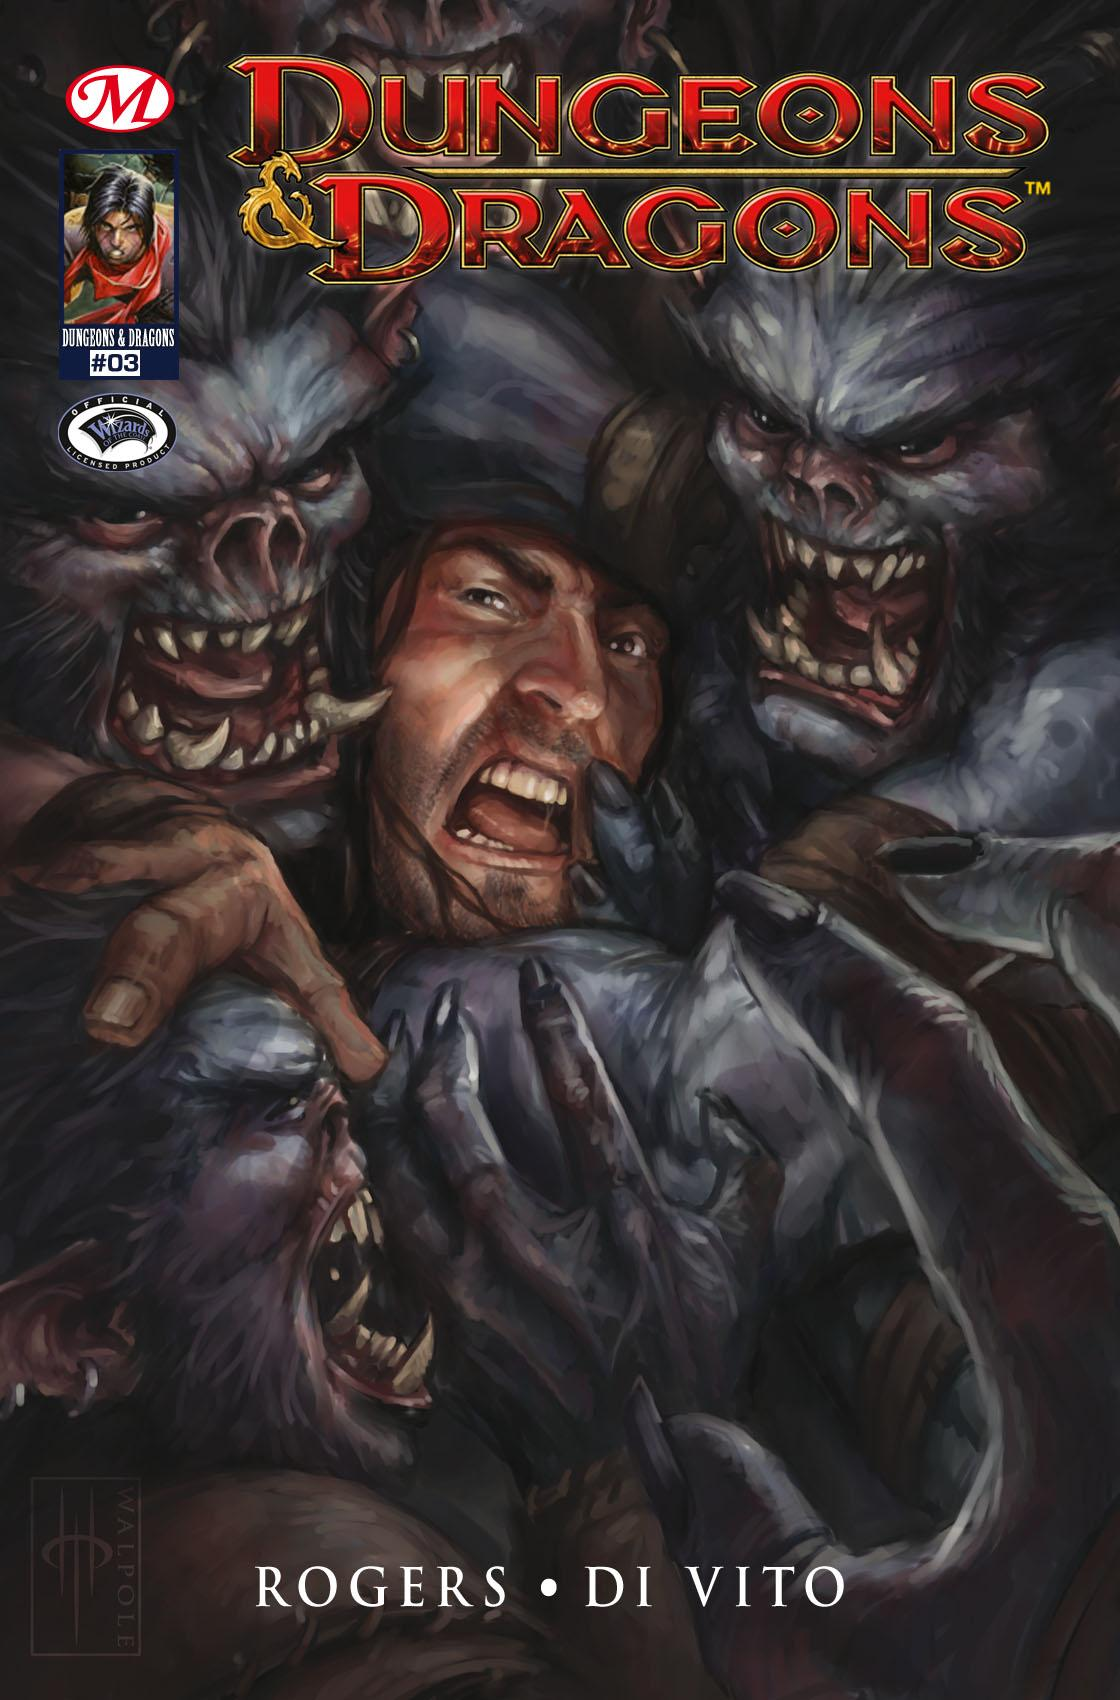 Dungeons & Dragons #3, DUNGEONS & DRAGONS, T1